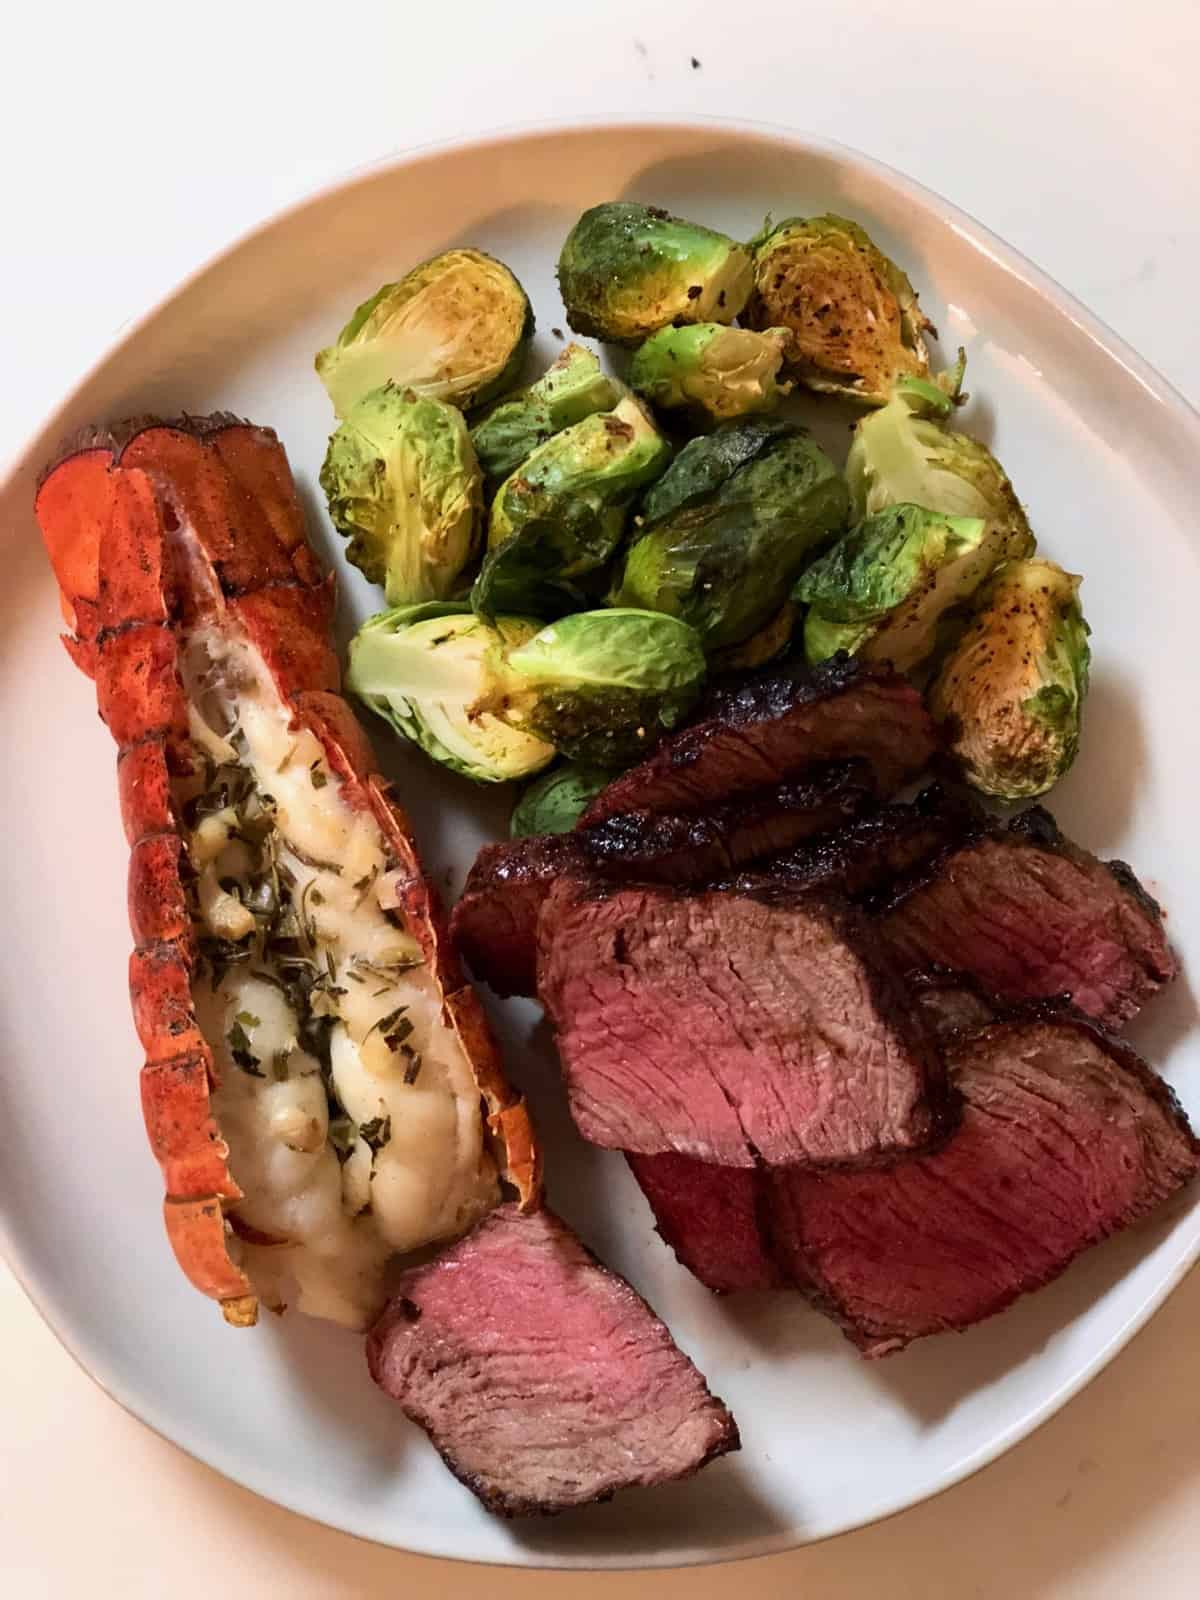 White plate of steak, brussel sprouts, and lobster